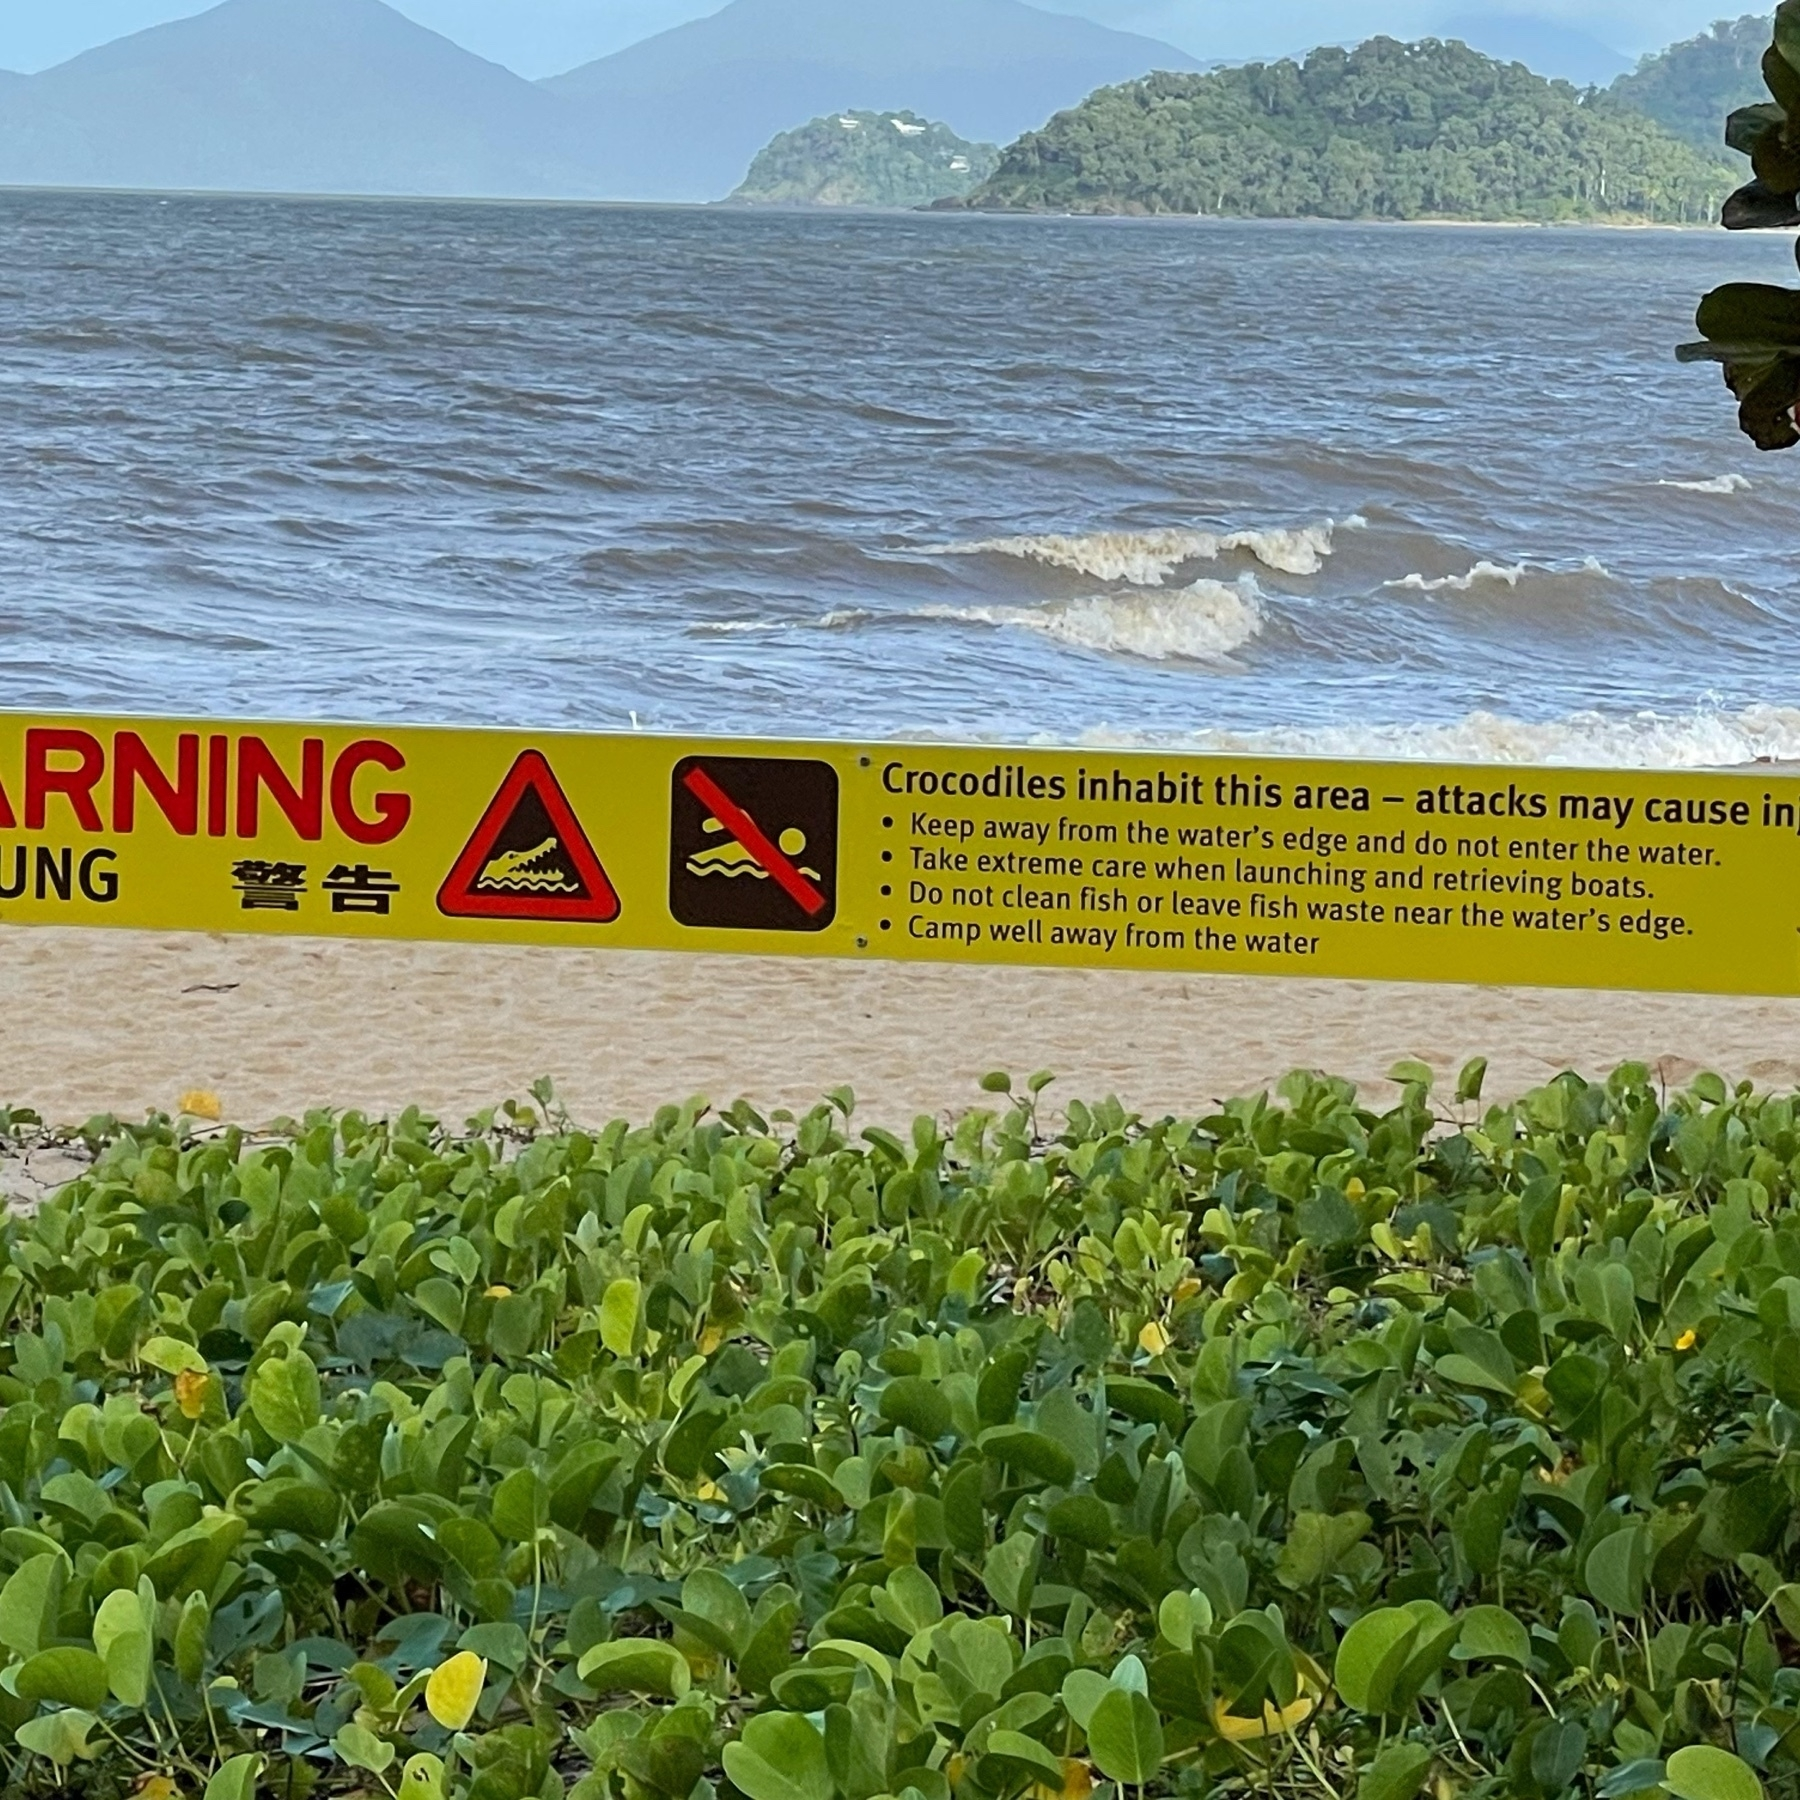 warning sign alerting to the presence of crocodiles